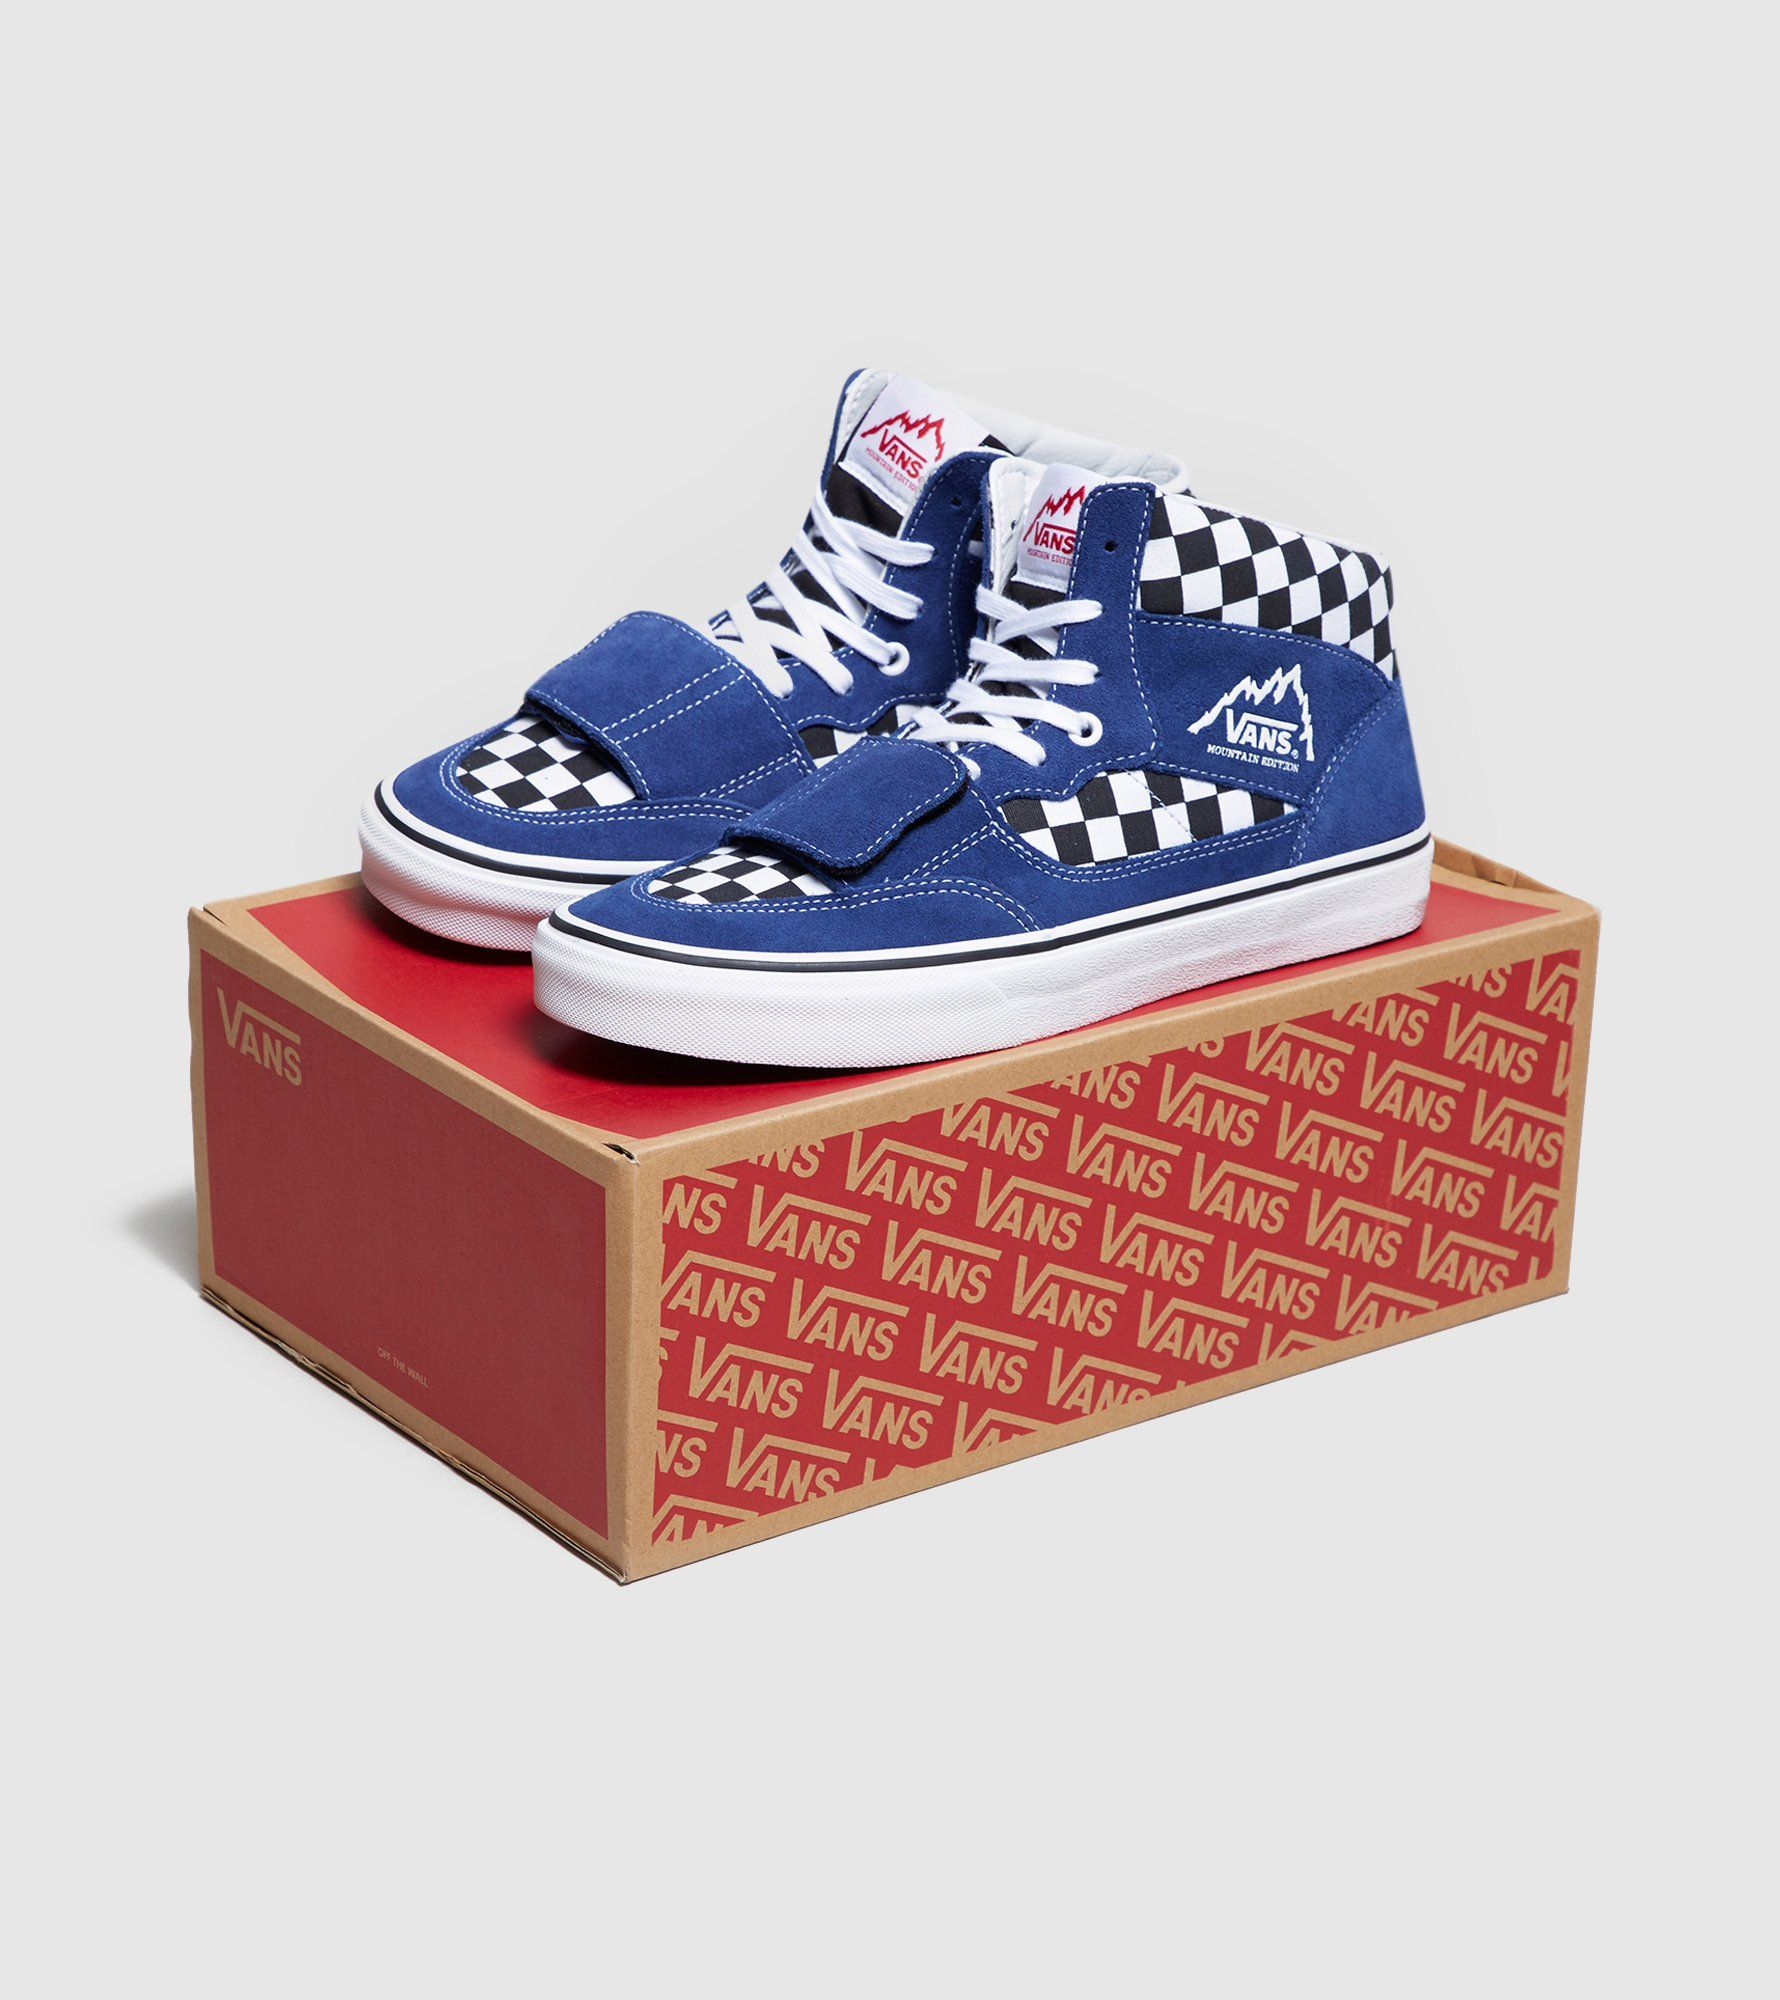 Vans Checkerboard Mountain Edition